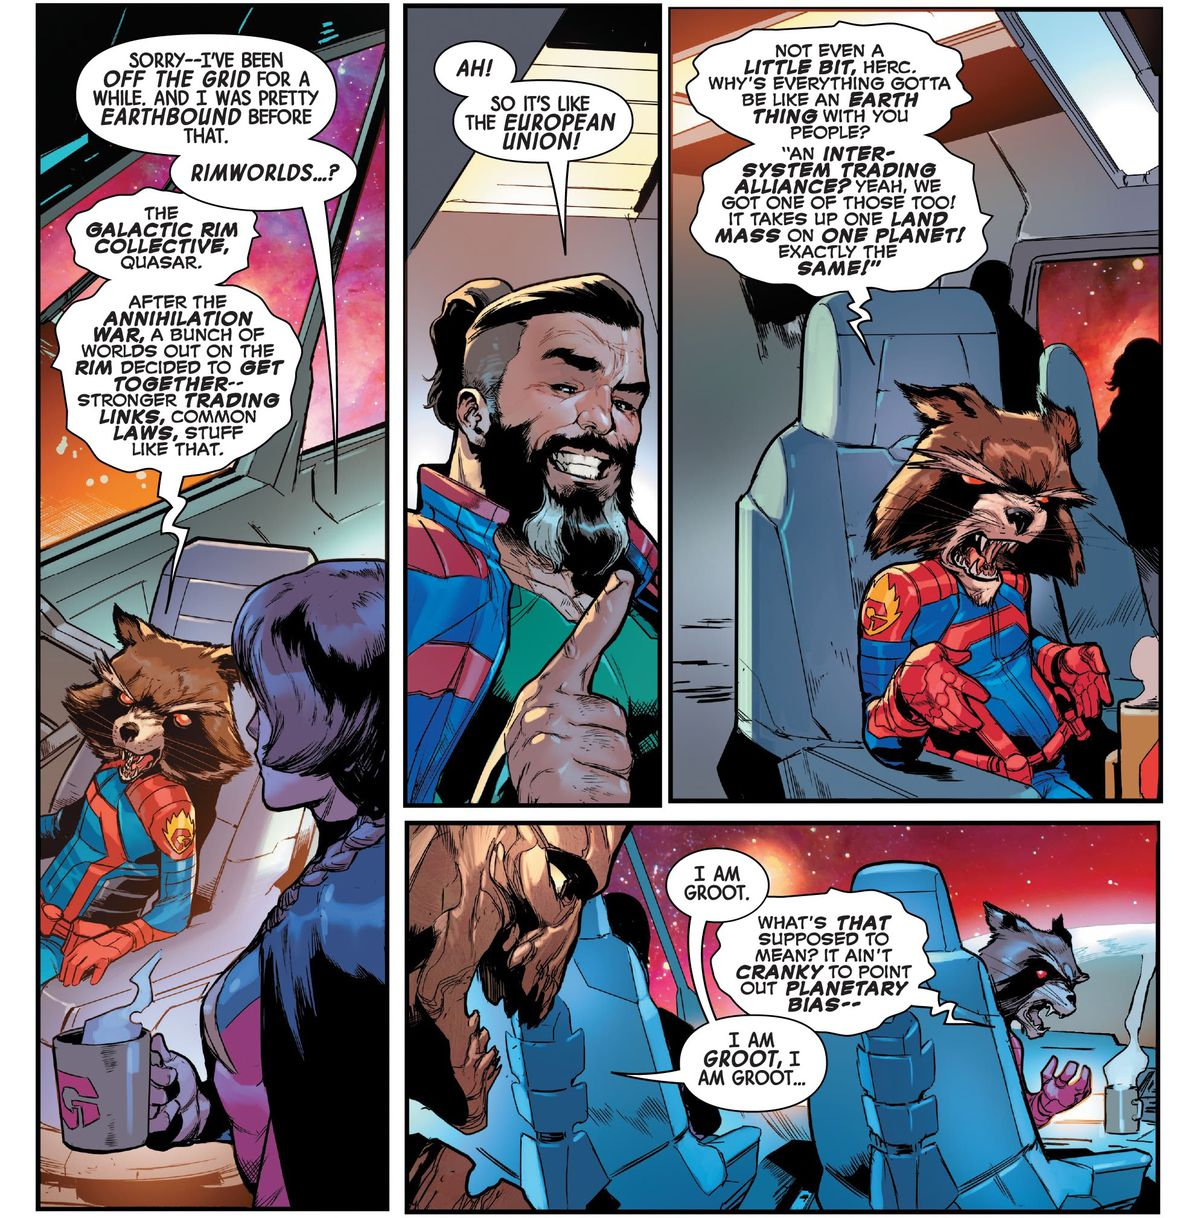 """Rocket Raccoon goes on a sarcastic little tirade about how you can't just compare things in space to things on Earth. """"'An inter-system trading alliance? Yeah, we got one of those too! It takes up one land mass on one planet! Exactly the same!"""" after Hercules compares the Galactic Rim Collective to the European Union in The Guardians of the Galaxy #15 (2021)."""